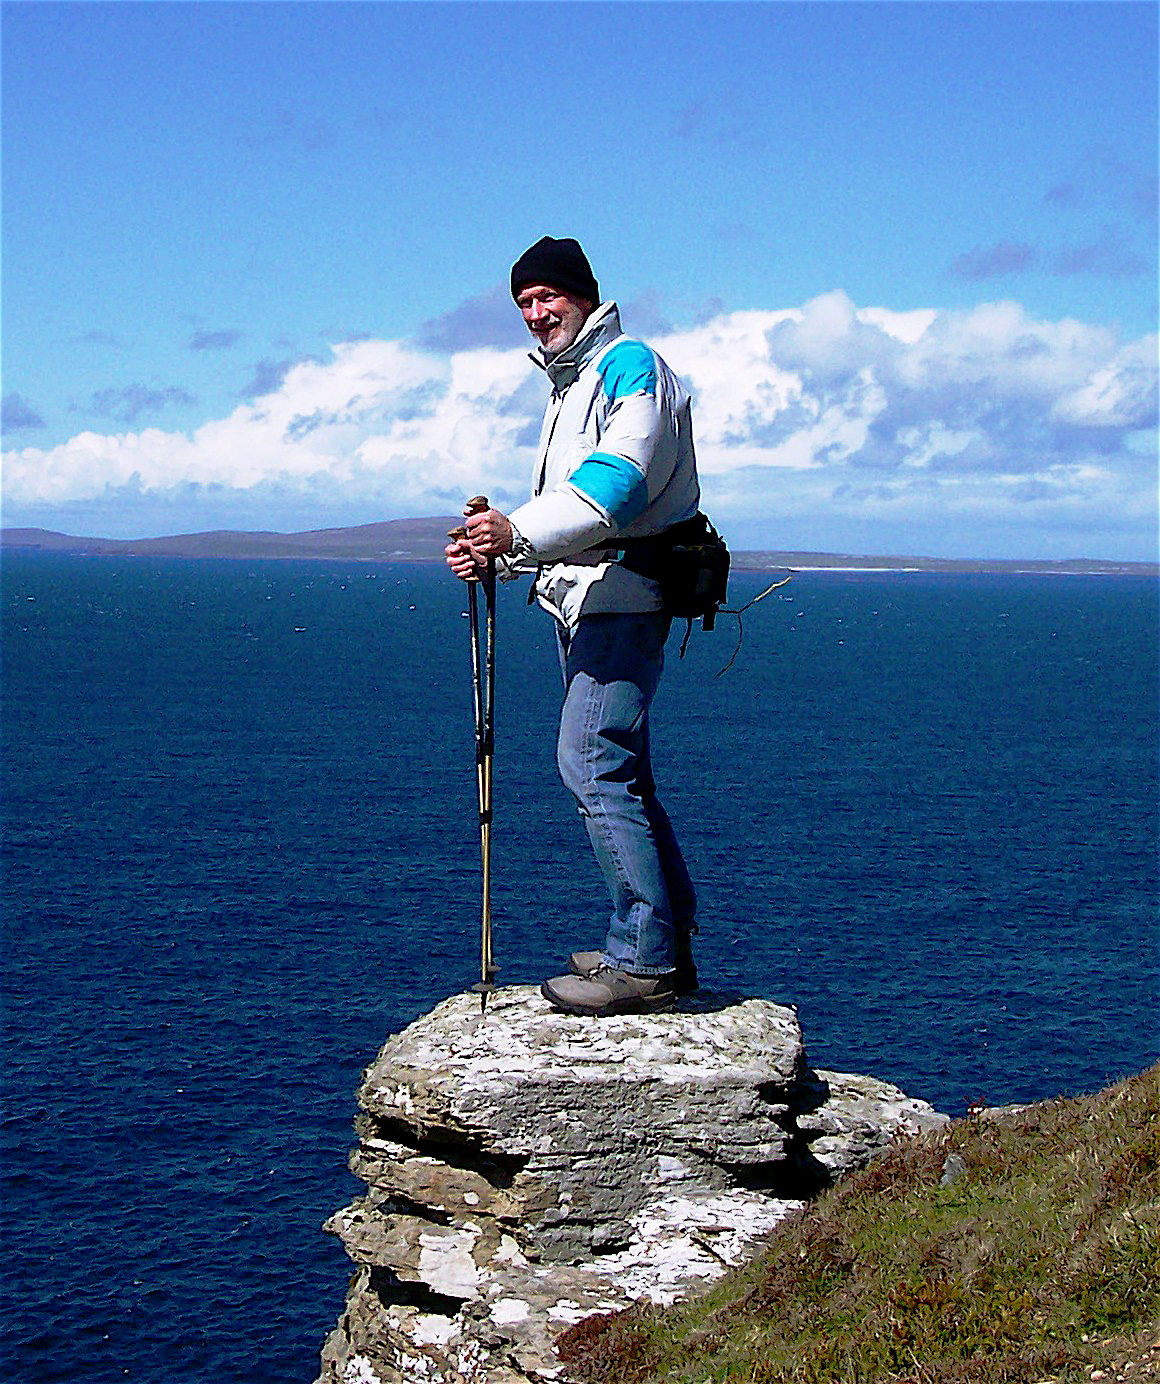 Dr. Jim Erdman, Sacquoy Head, northcoast of Rousay, Orkney